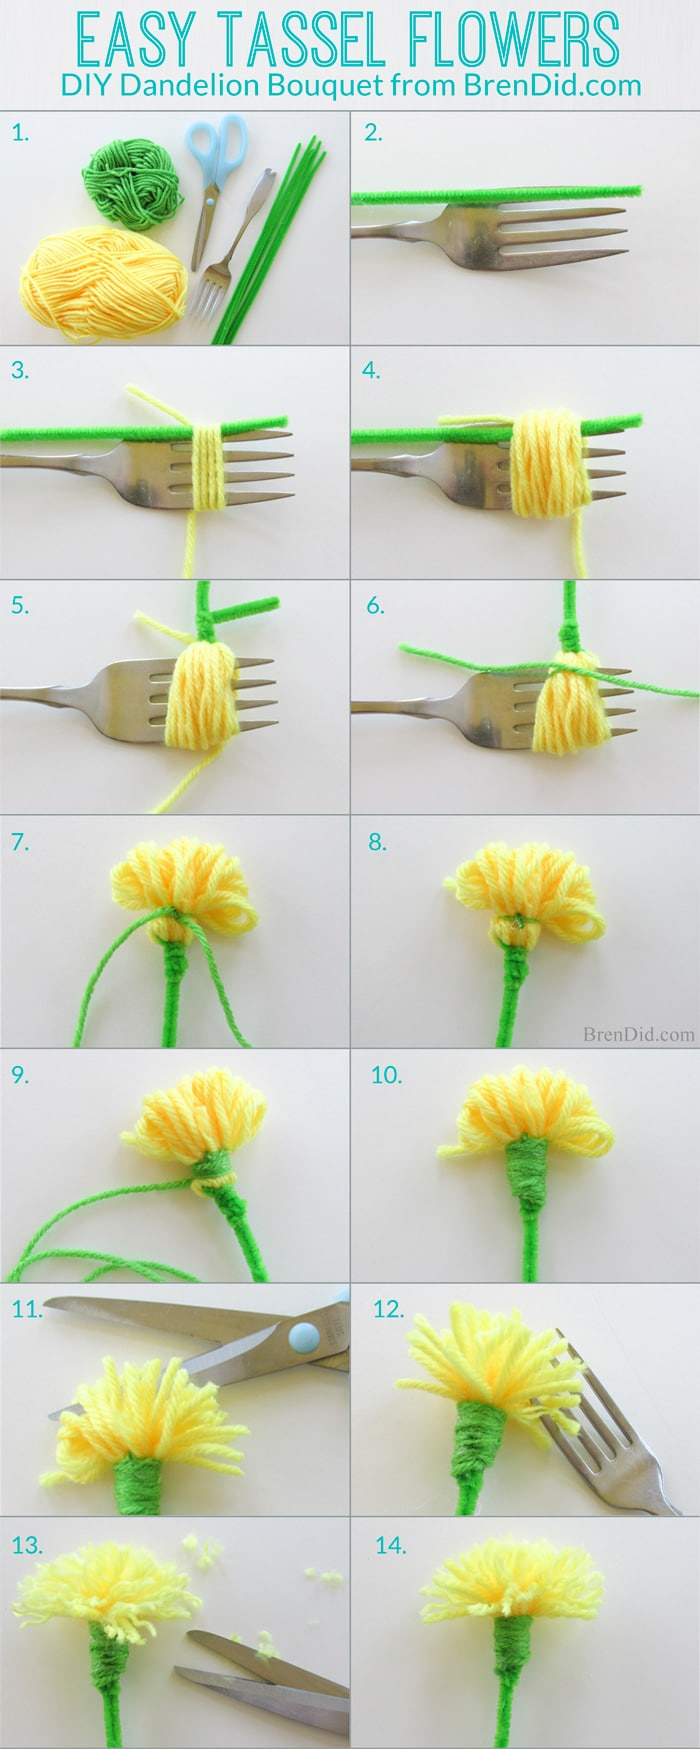 easy tassel flowers diy dandelion bouquet bren did. Black Bedroom Furniture Sets. Home Design Ideas